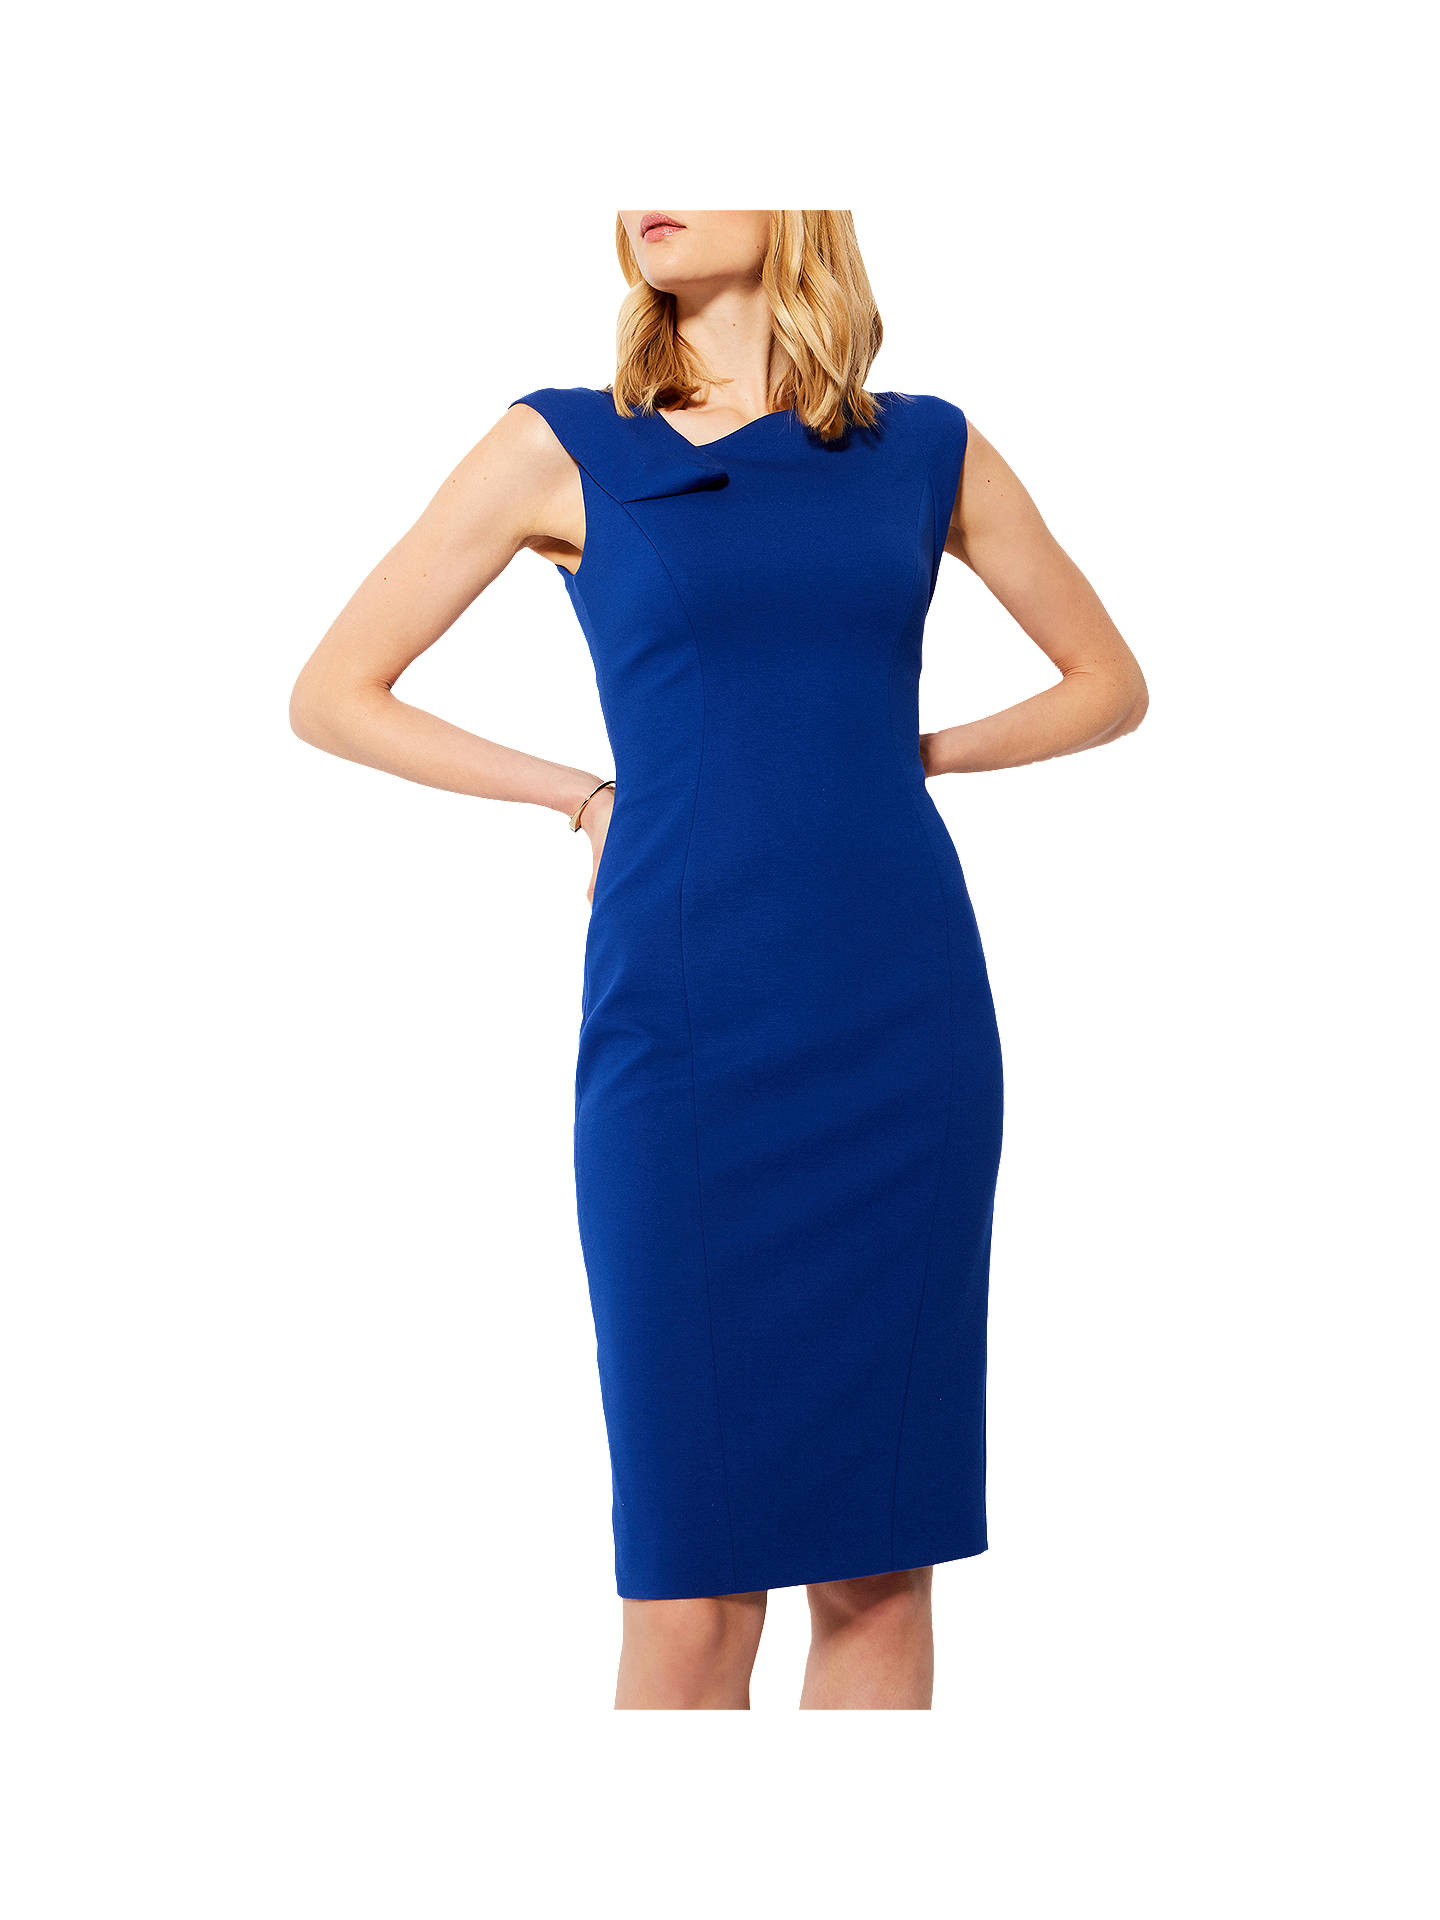 b25de76c45e3 Buy Karen Millen Fold Detail Pencil Dress, Blue, 6 Online at johnlewis.com  ...